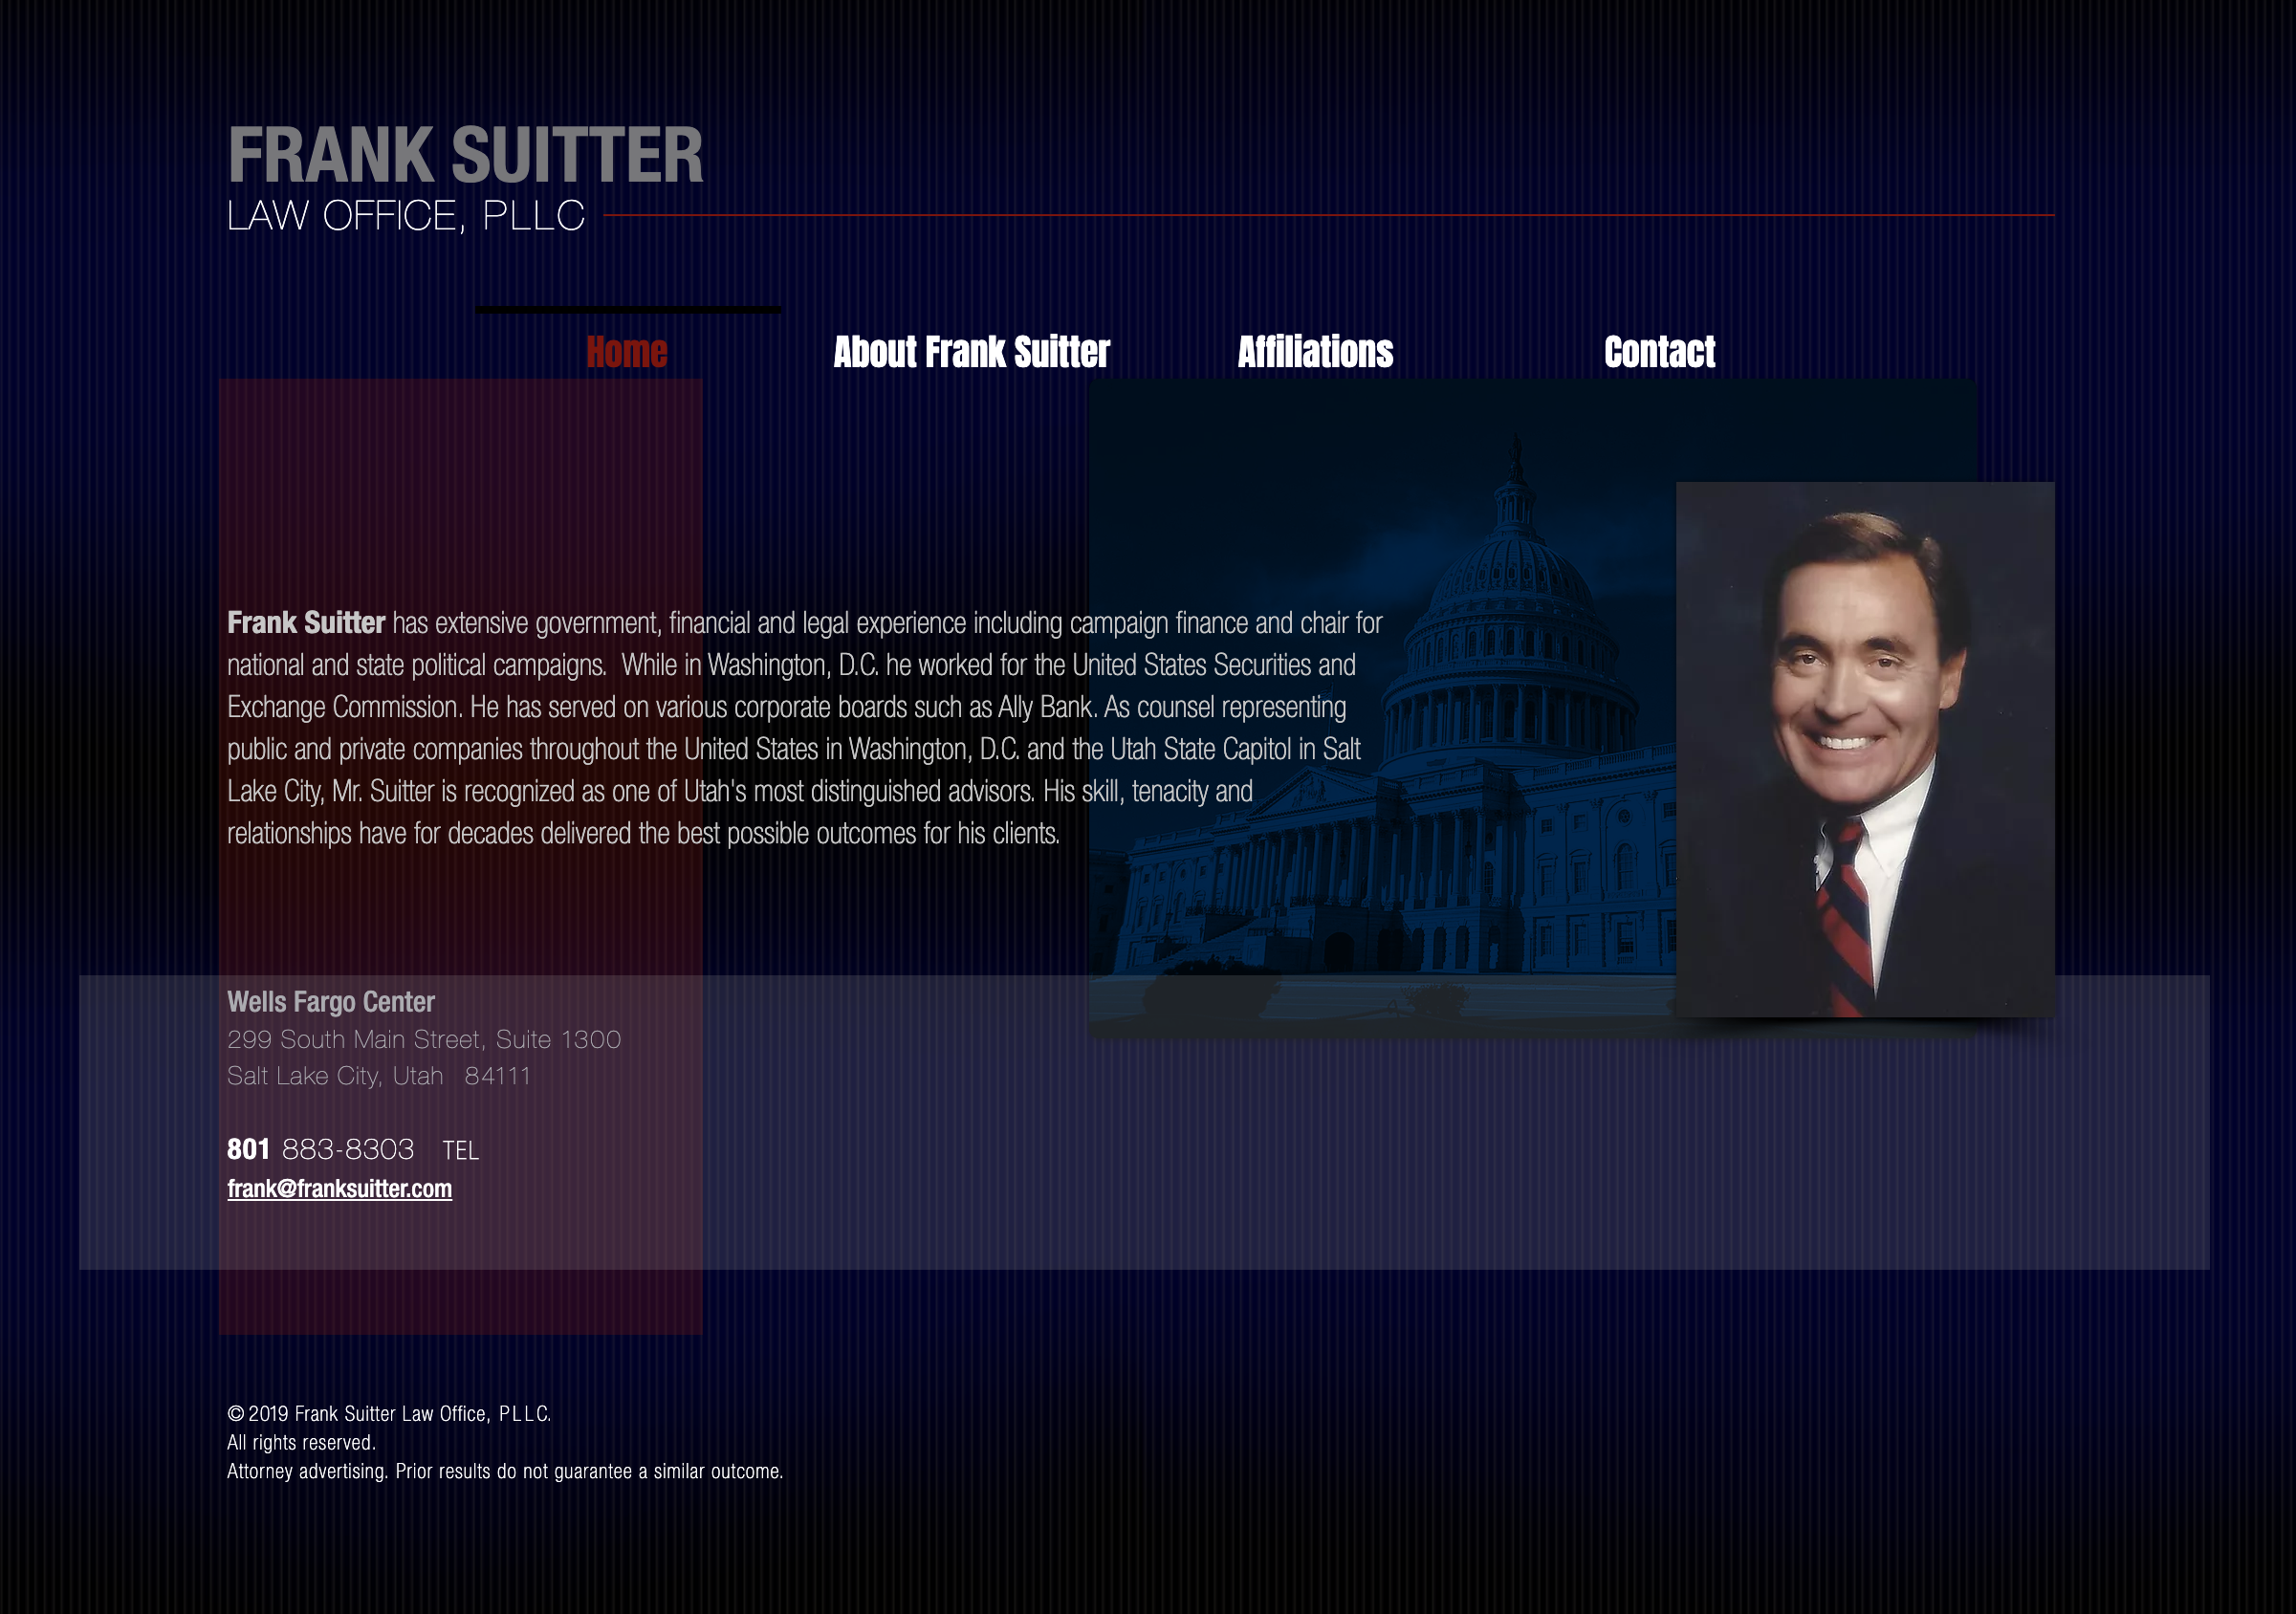 FRANK SUITTER LAW OFFICE, PLLC